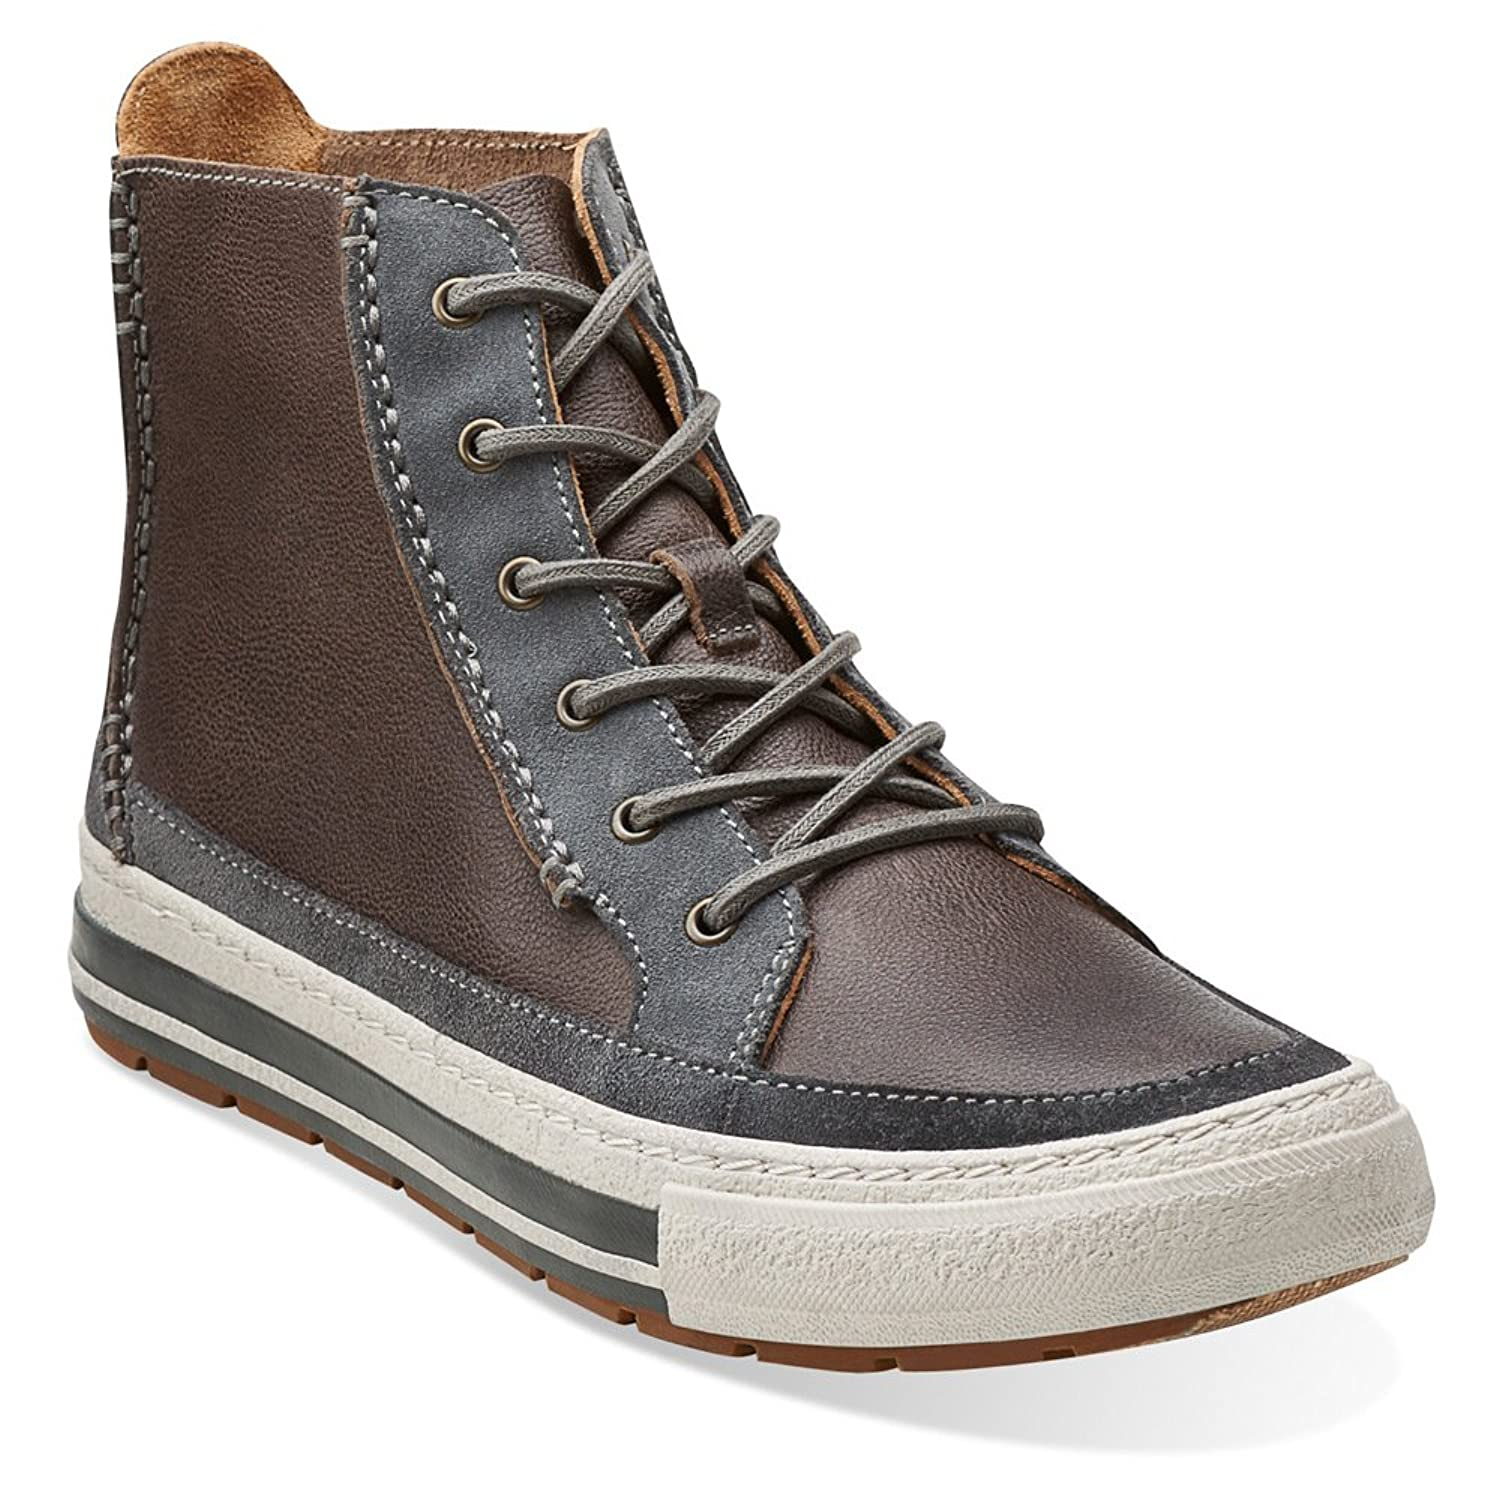 Clarks Men's Nepler Rise Leather Casual Sneakers